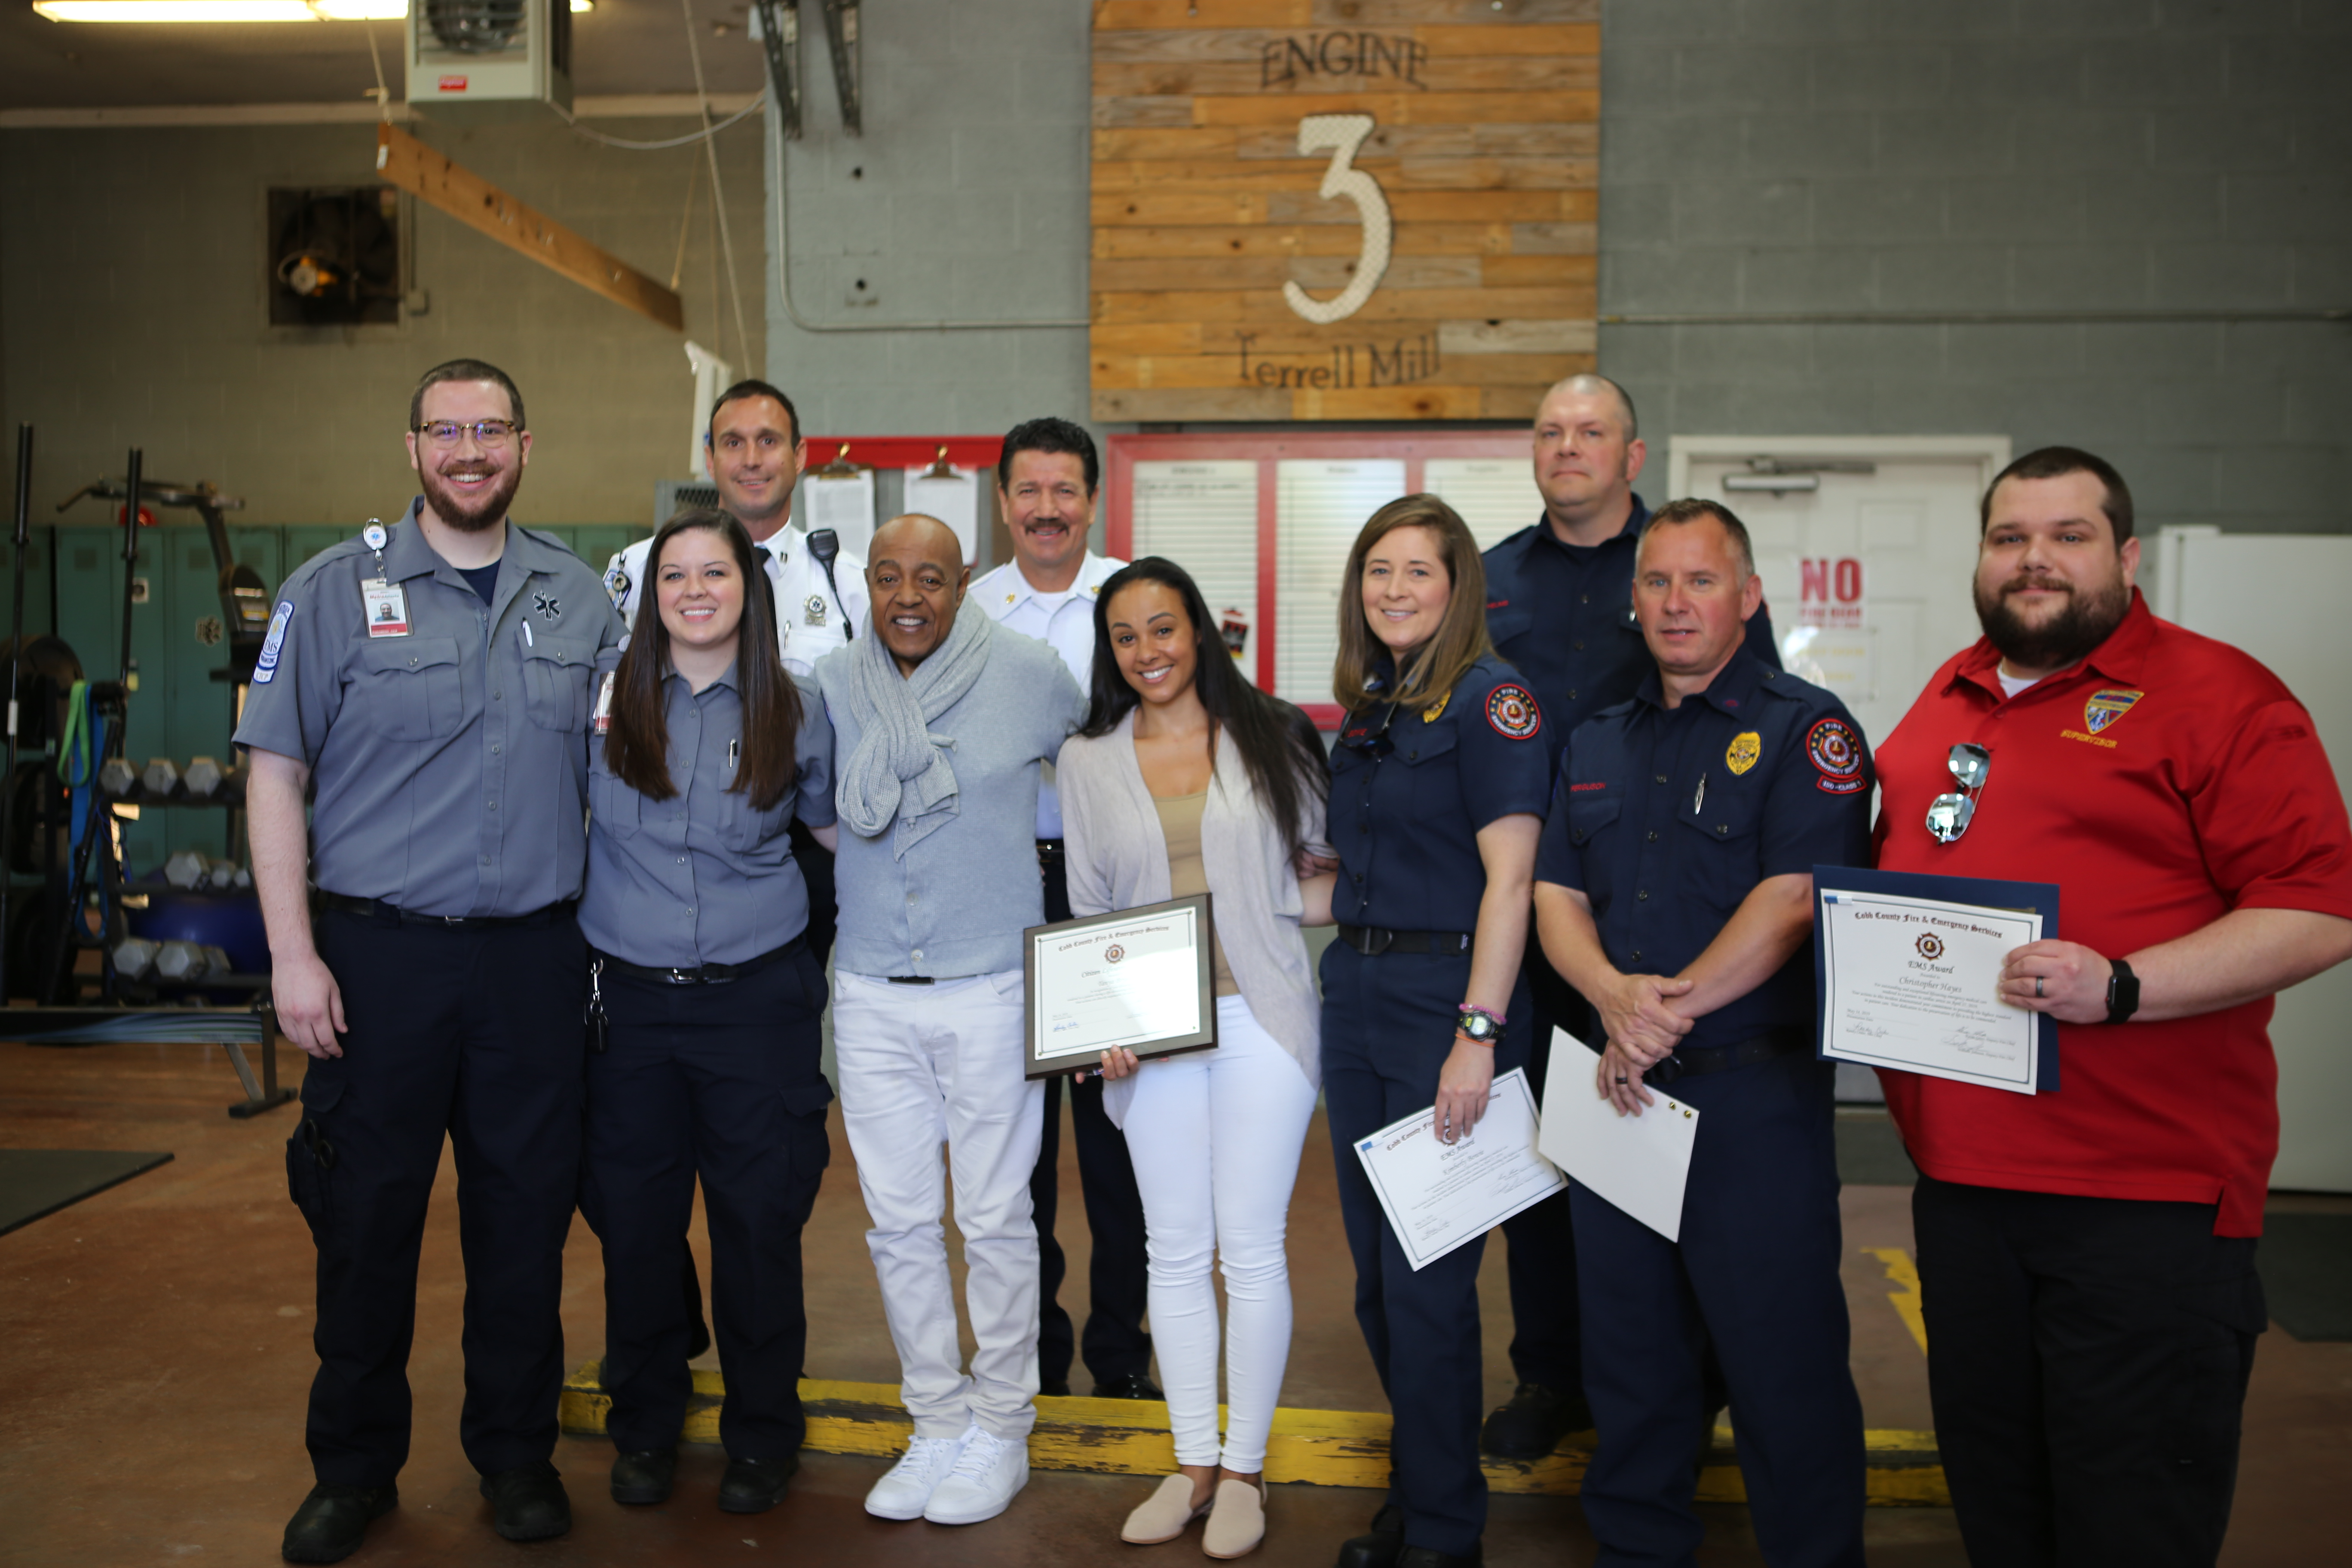 Peabo Bryson And Wife Visit First Responders Who Saved His Life